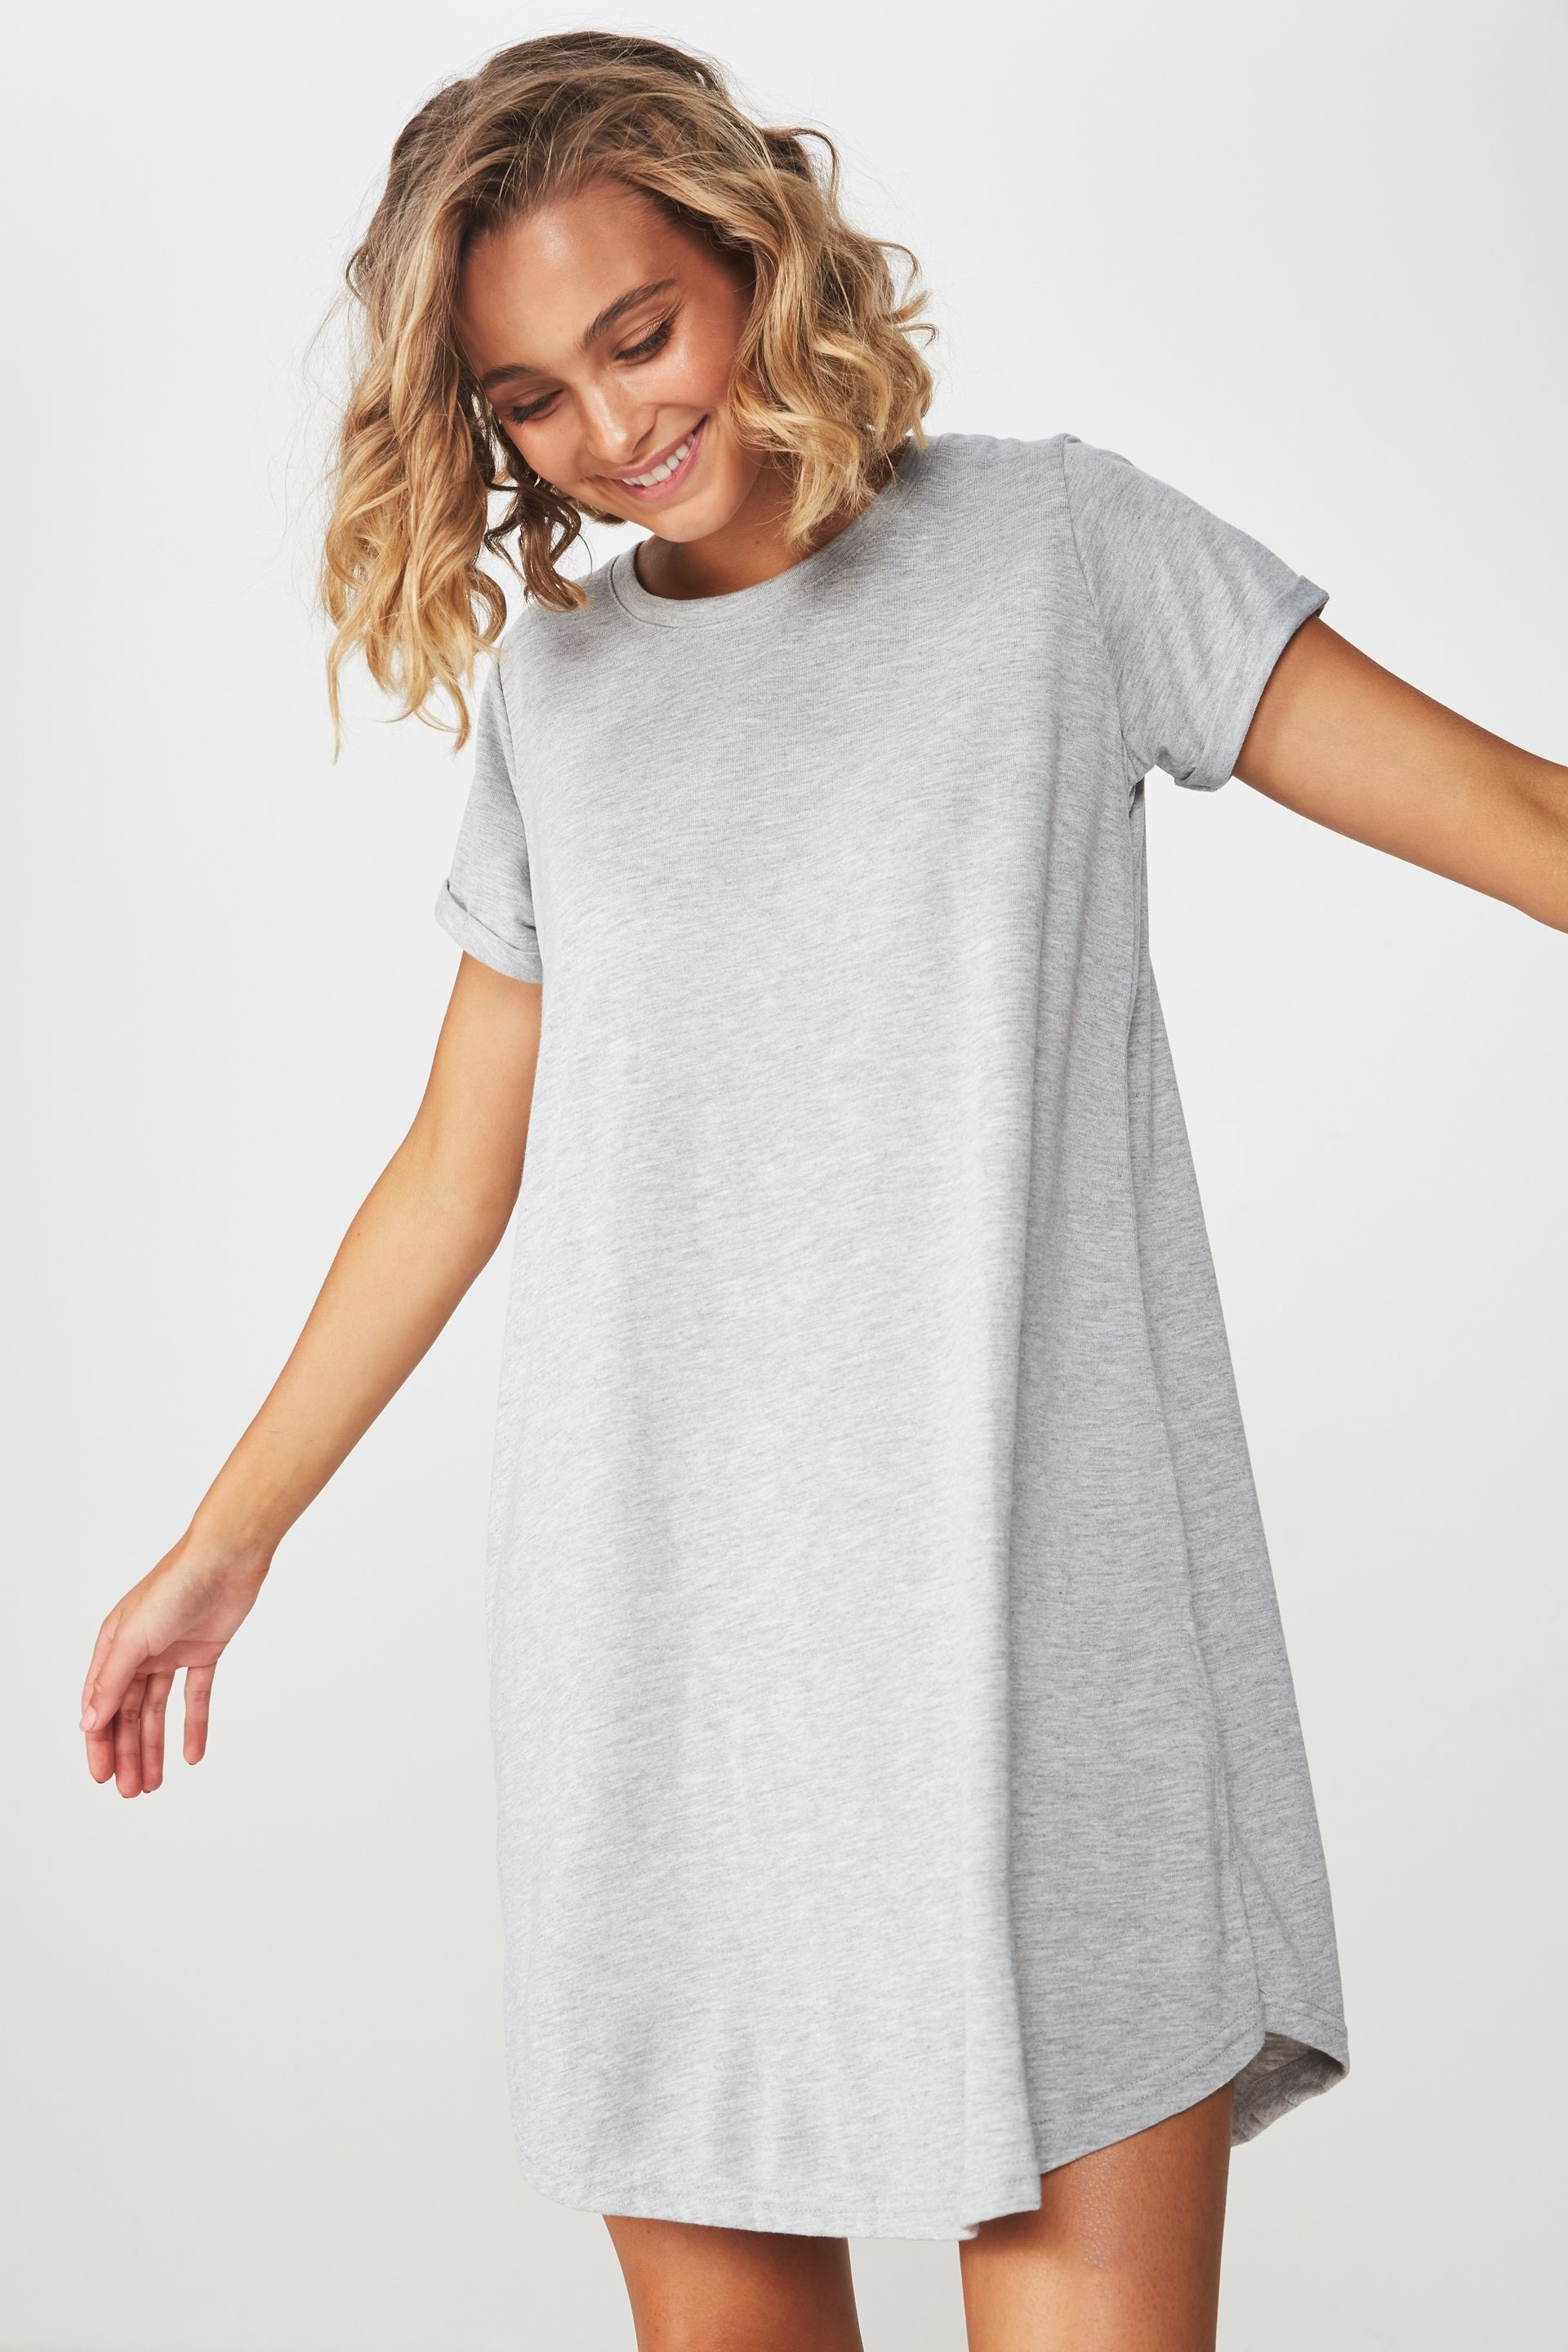 Women's Dresses - Maxi Dresses & More | Cotton On